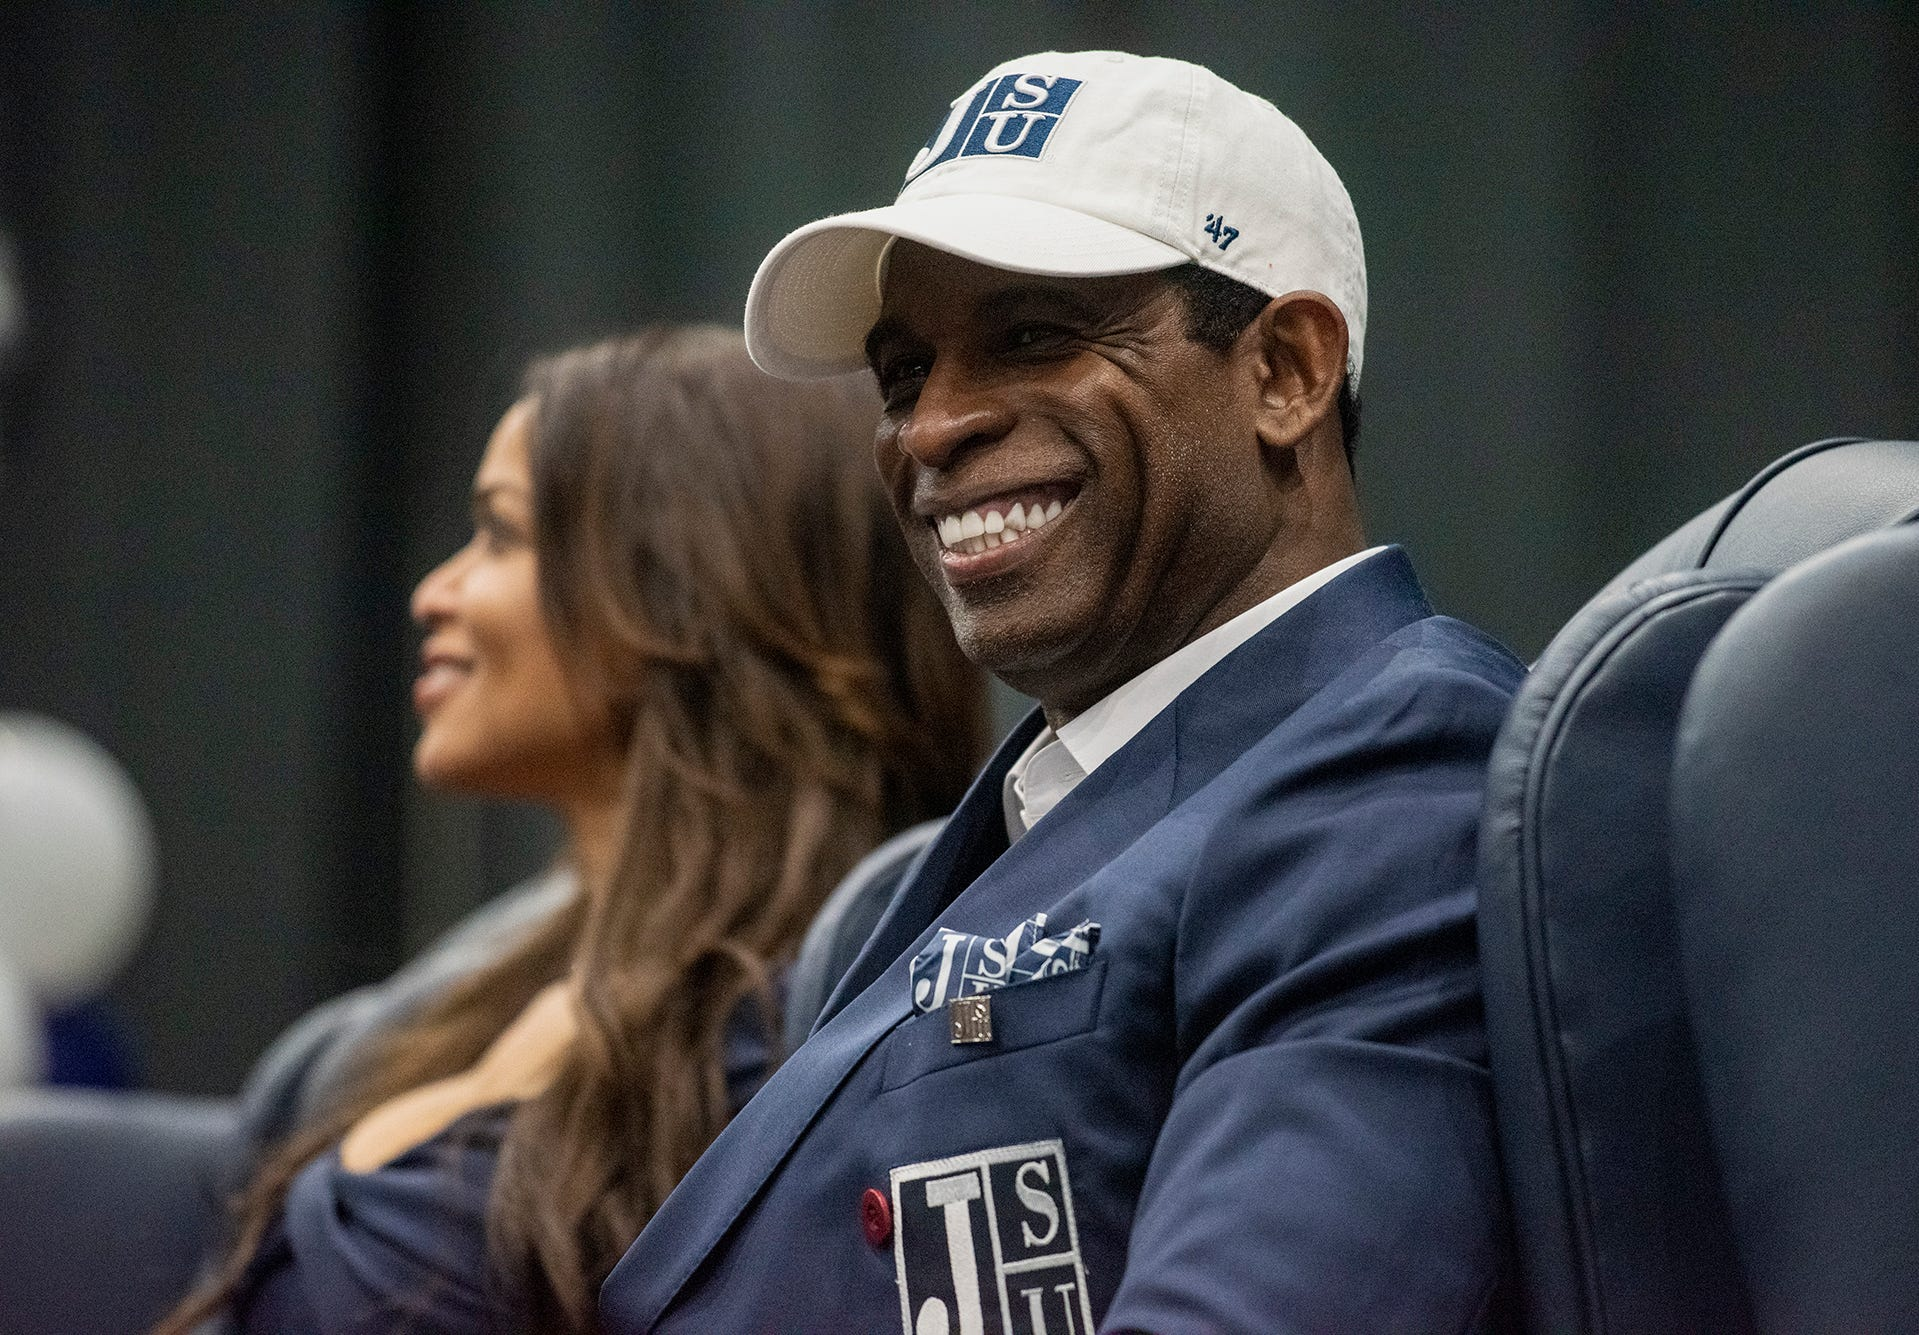 What Deion Sanders will earn as head coach at Jackson State